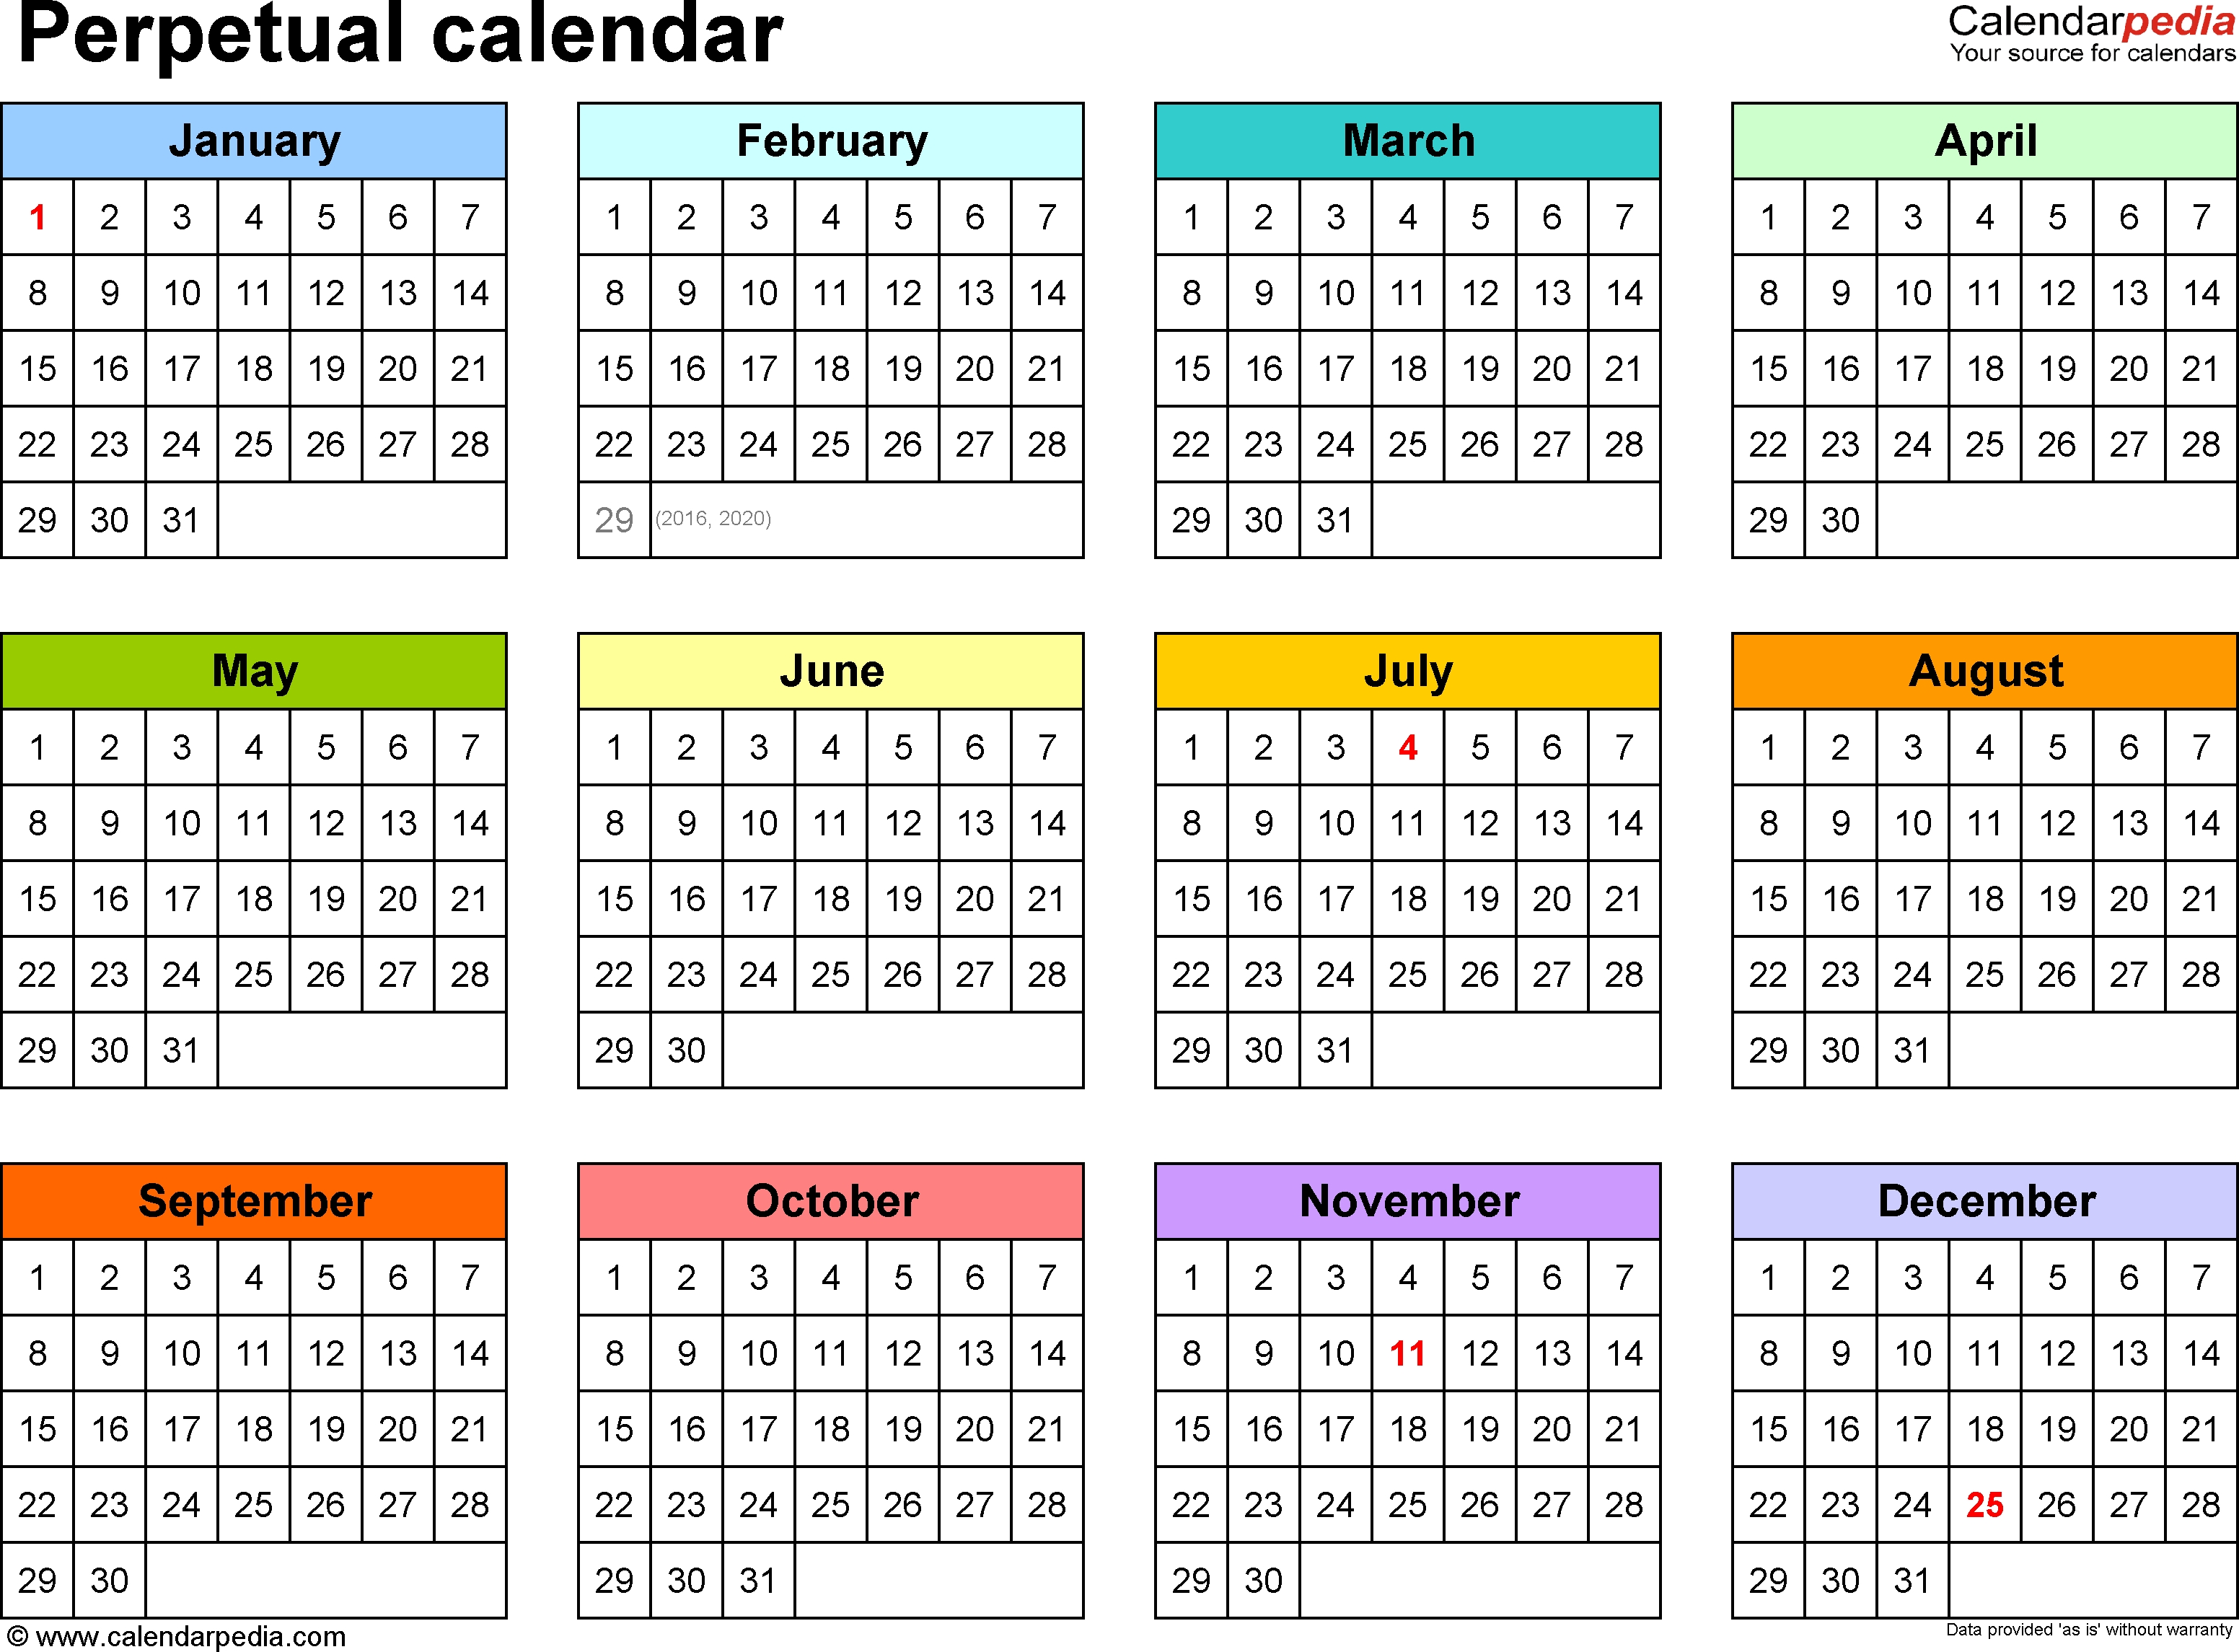 Perpetual Calendars - 7 Free Printable Word Templates  15 Week Schedule Depo Schedule 2020